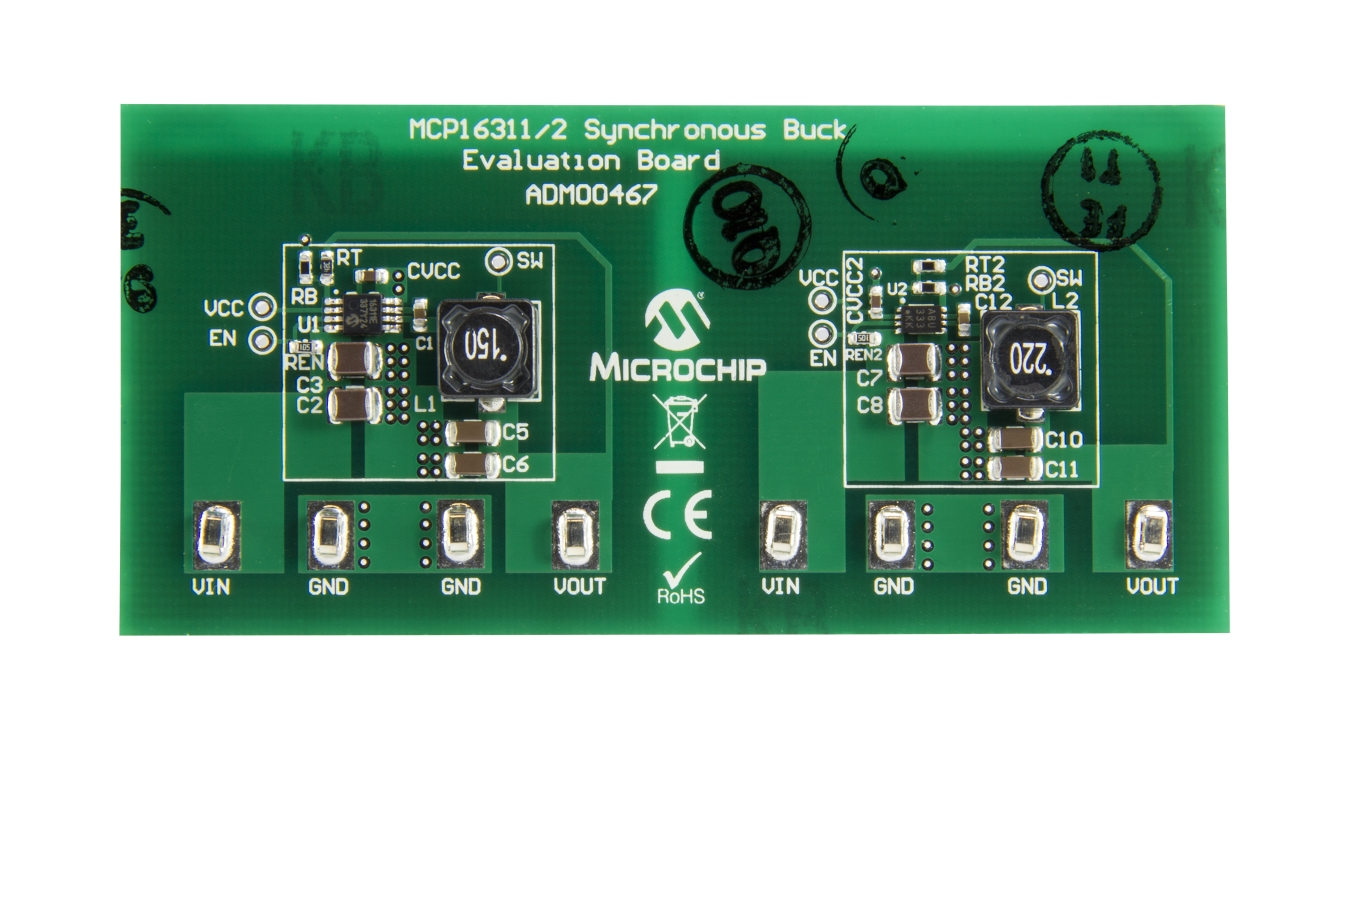 Development Tools Inductor Requirements For Dc Converters And Filters In Automotive The Mcp16311 2 Synchronous Buck Converter Evaluation Board Is Used To Evaluate Demonstrate Microchip Technologys Product